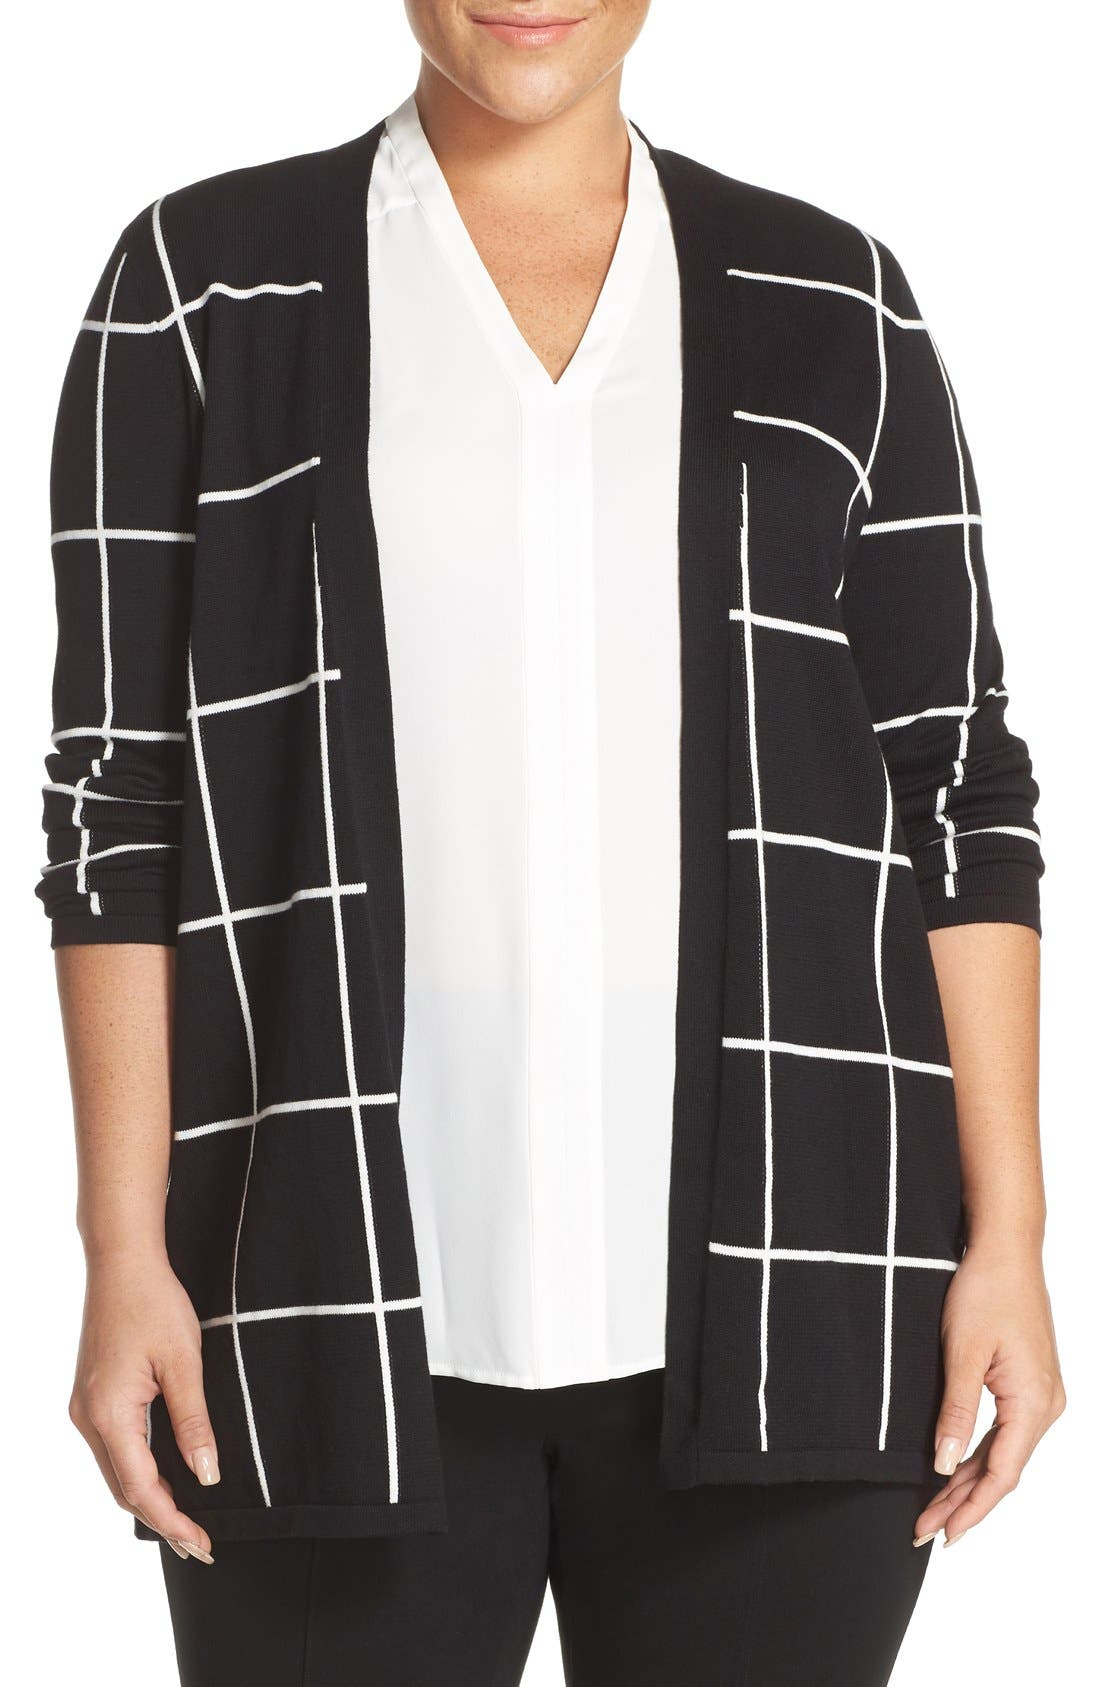 Main Image - Vince Camuto Windowpane Intarsia Open Front Cardigan (Plus Size)